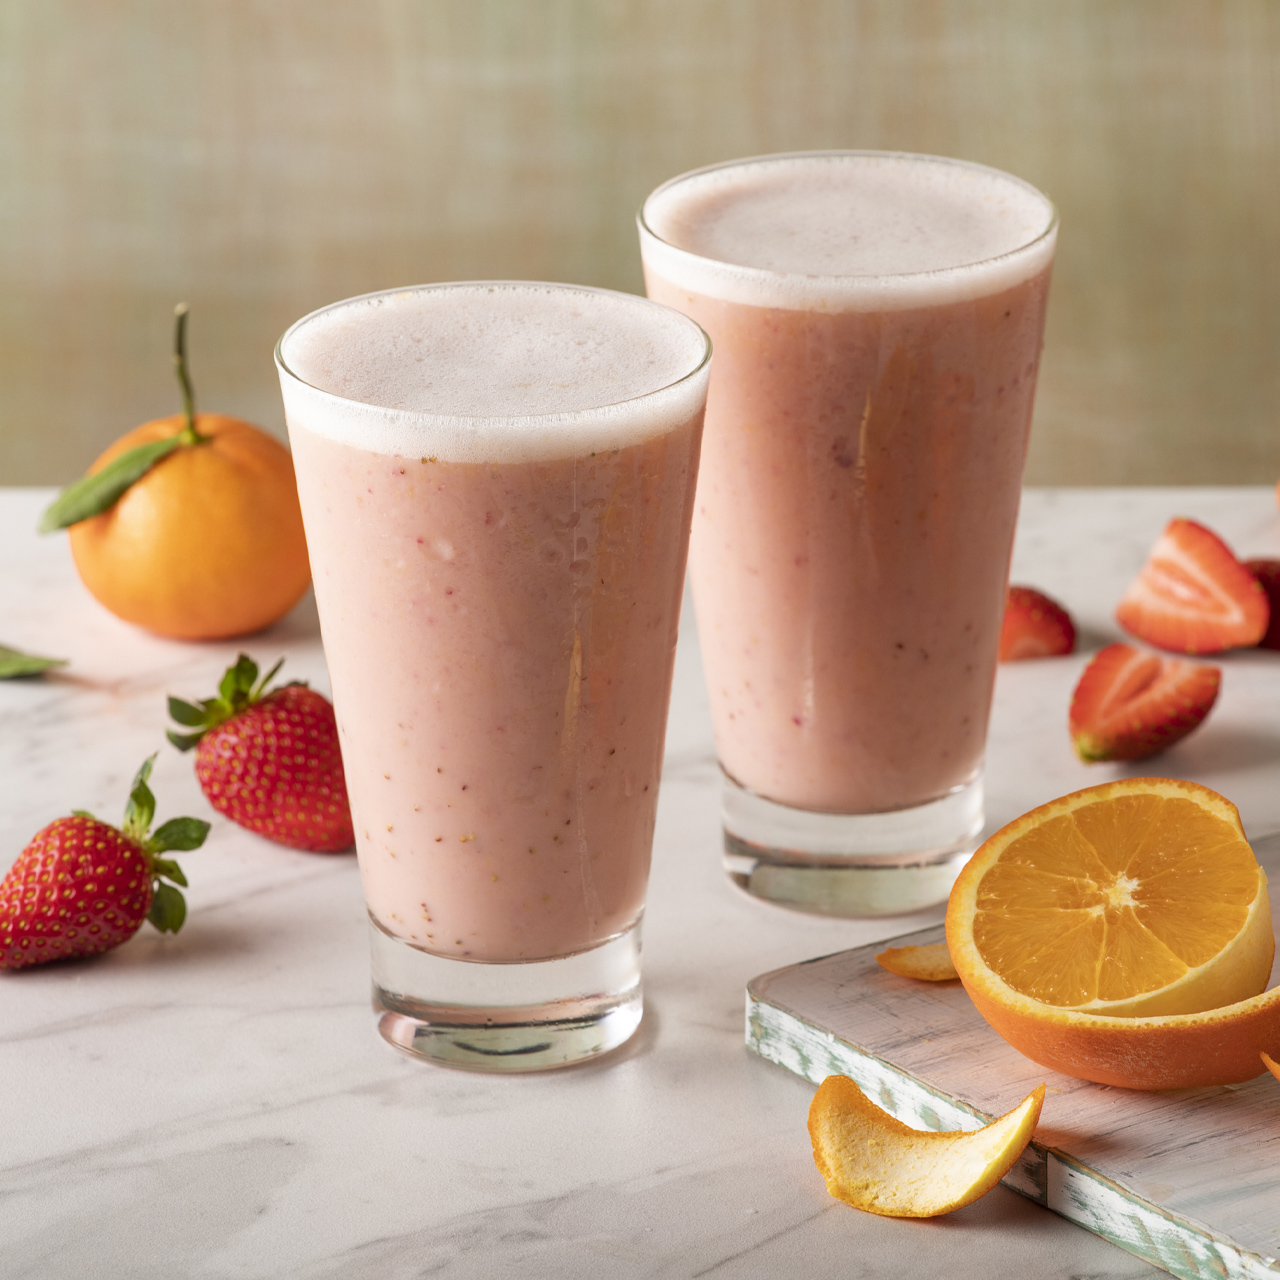 Strawberry Orange Sunrise Smoothie